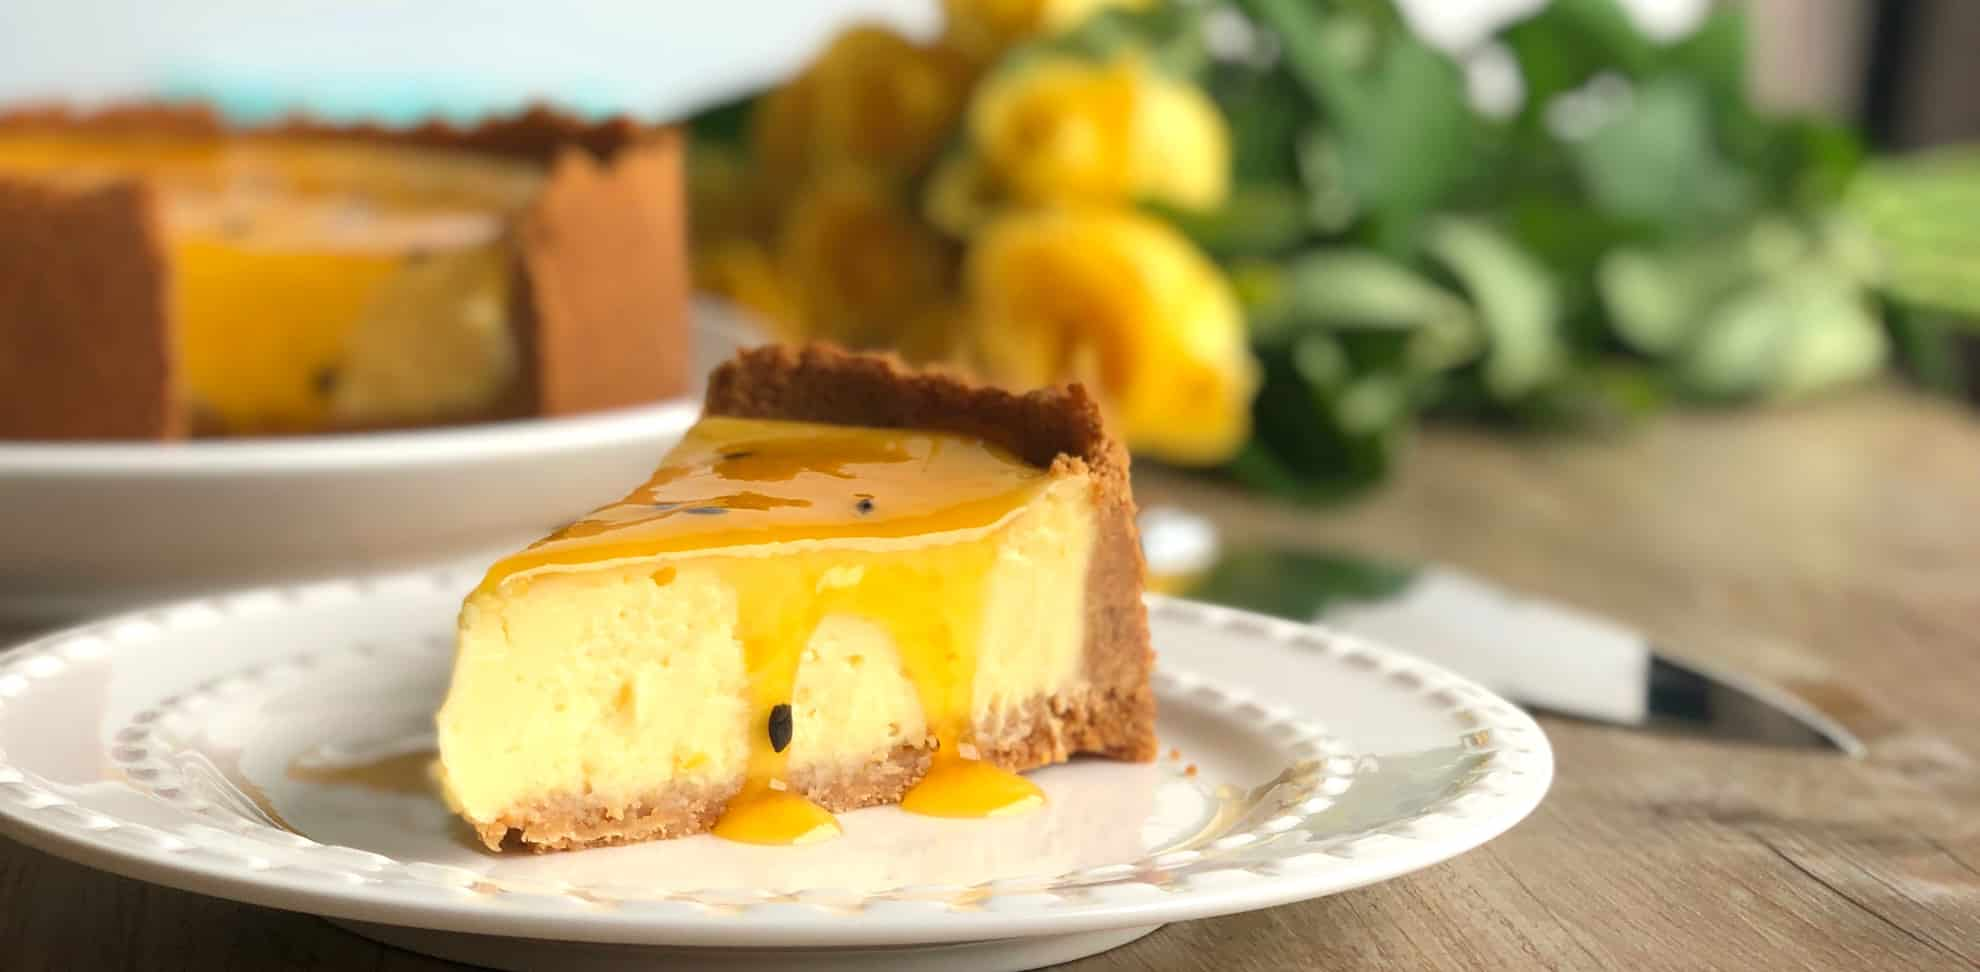 Slice of Just A Mums baked cheesecake with barkers passionfruit sauce